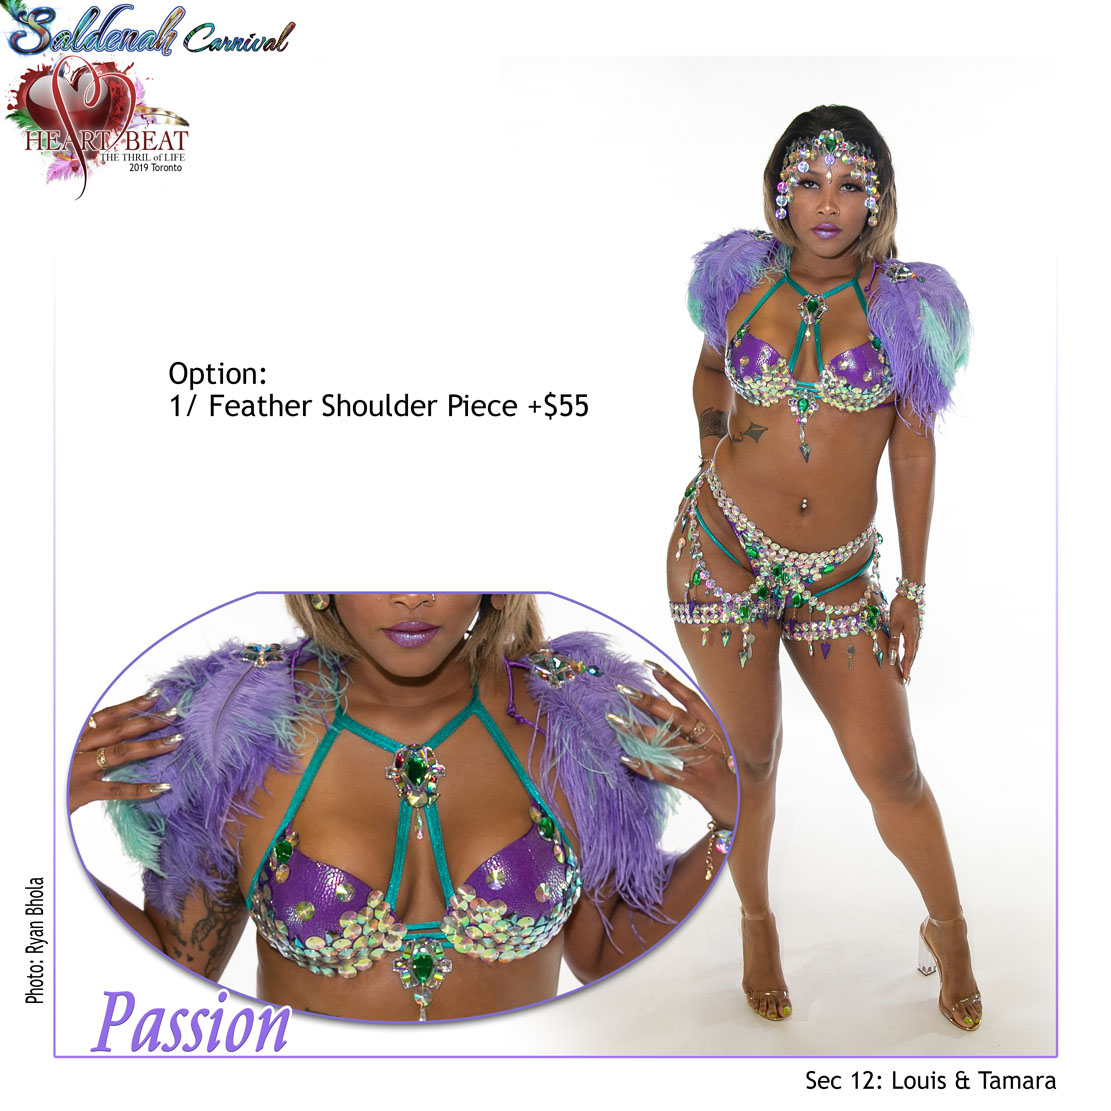 Saldenah Carnival Section 12 Passion